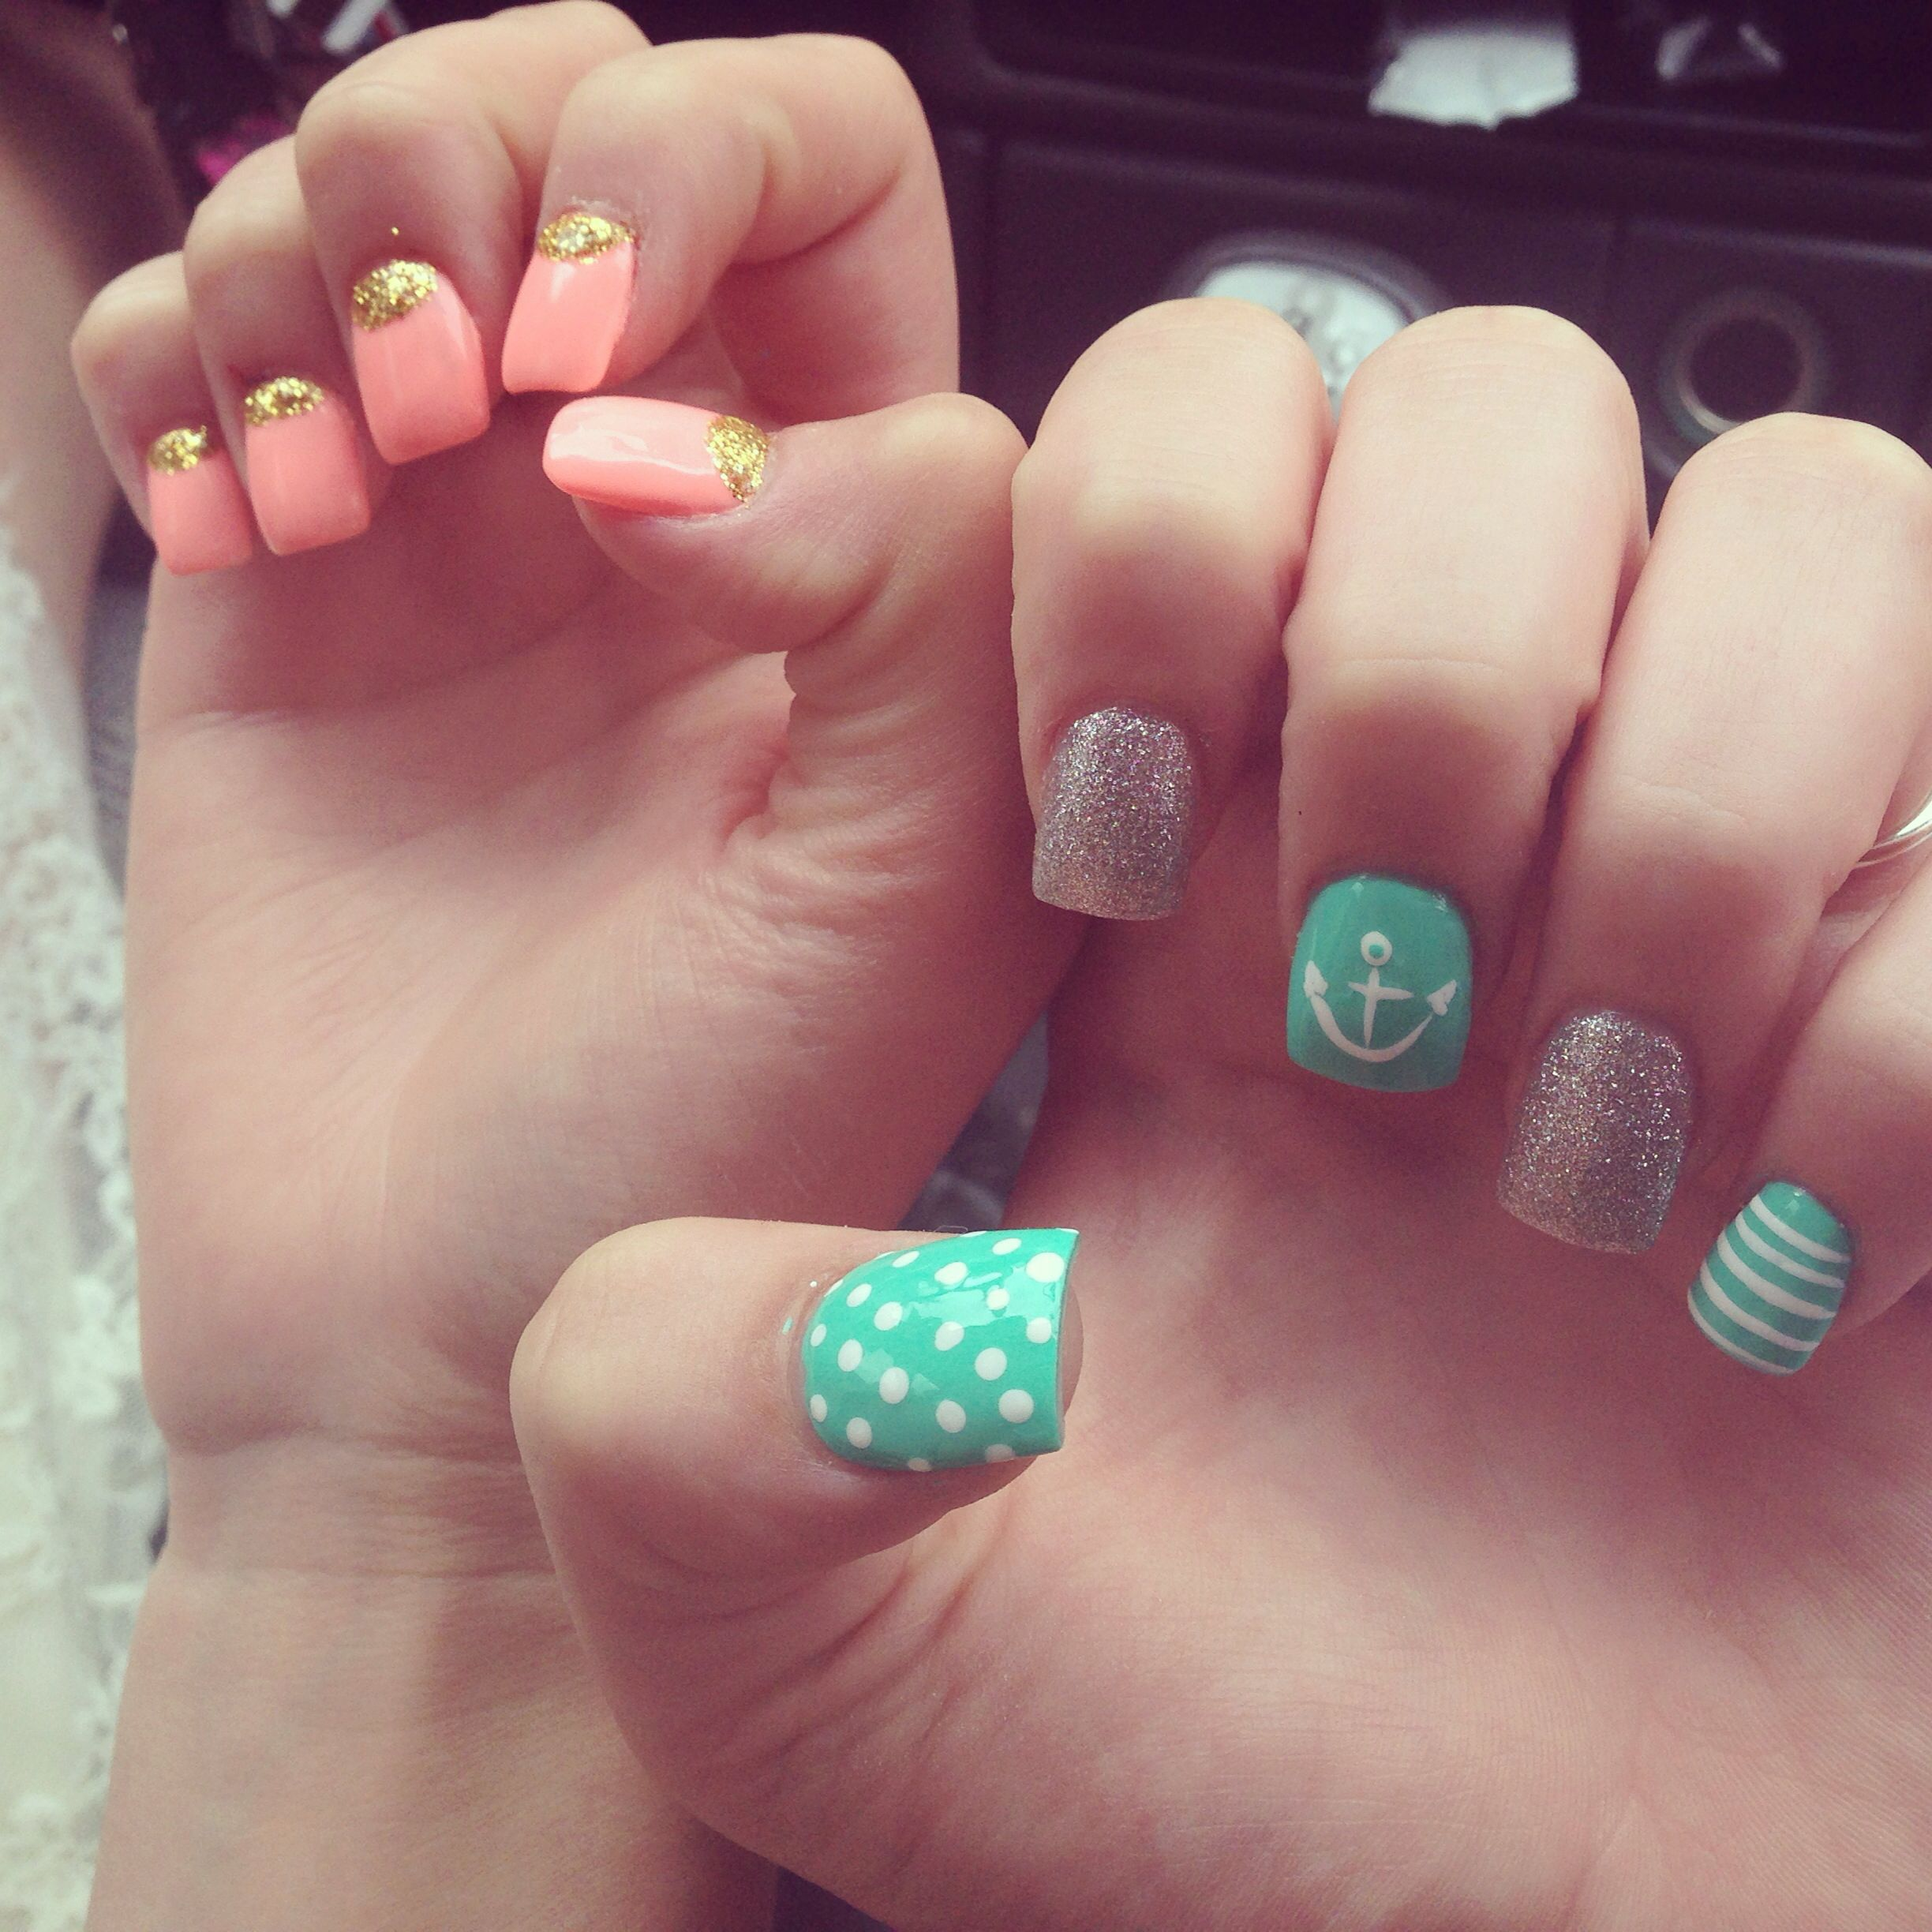 My friends and my nails.